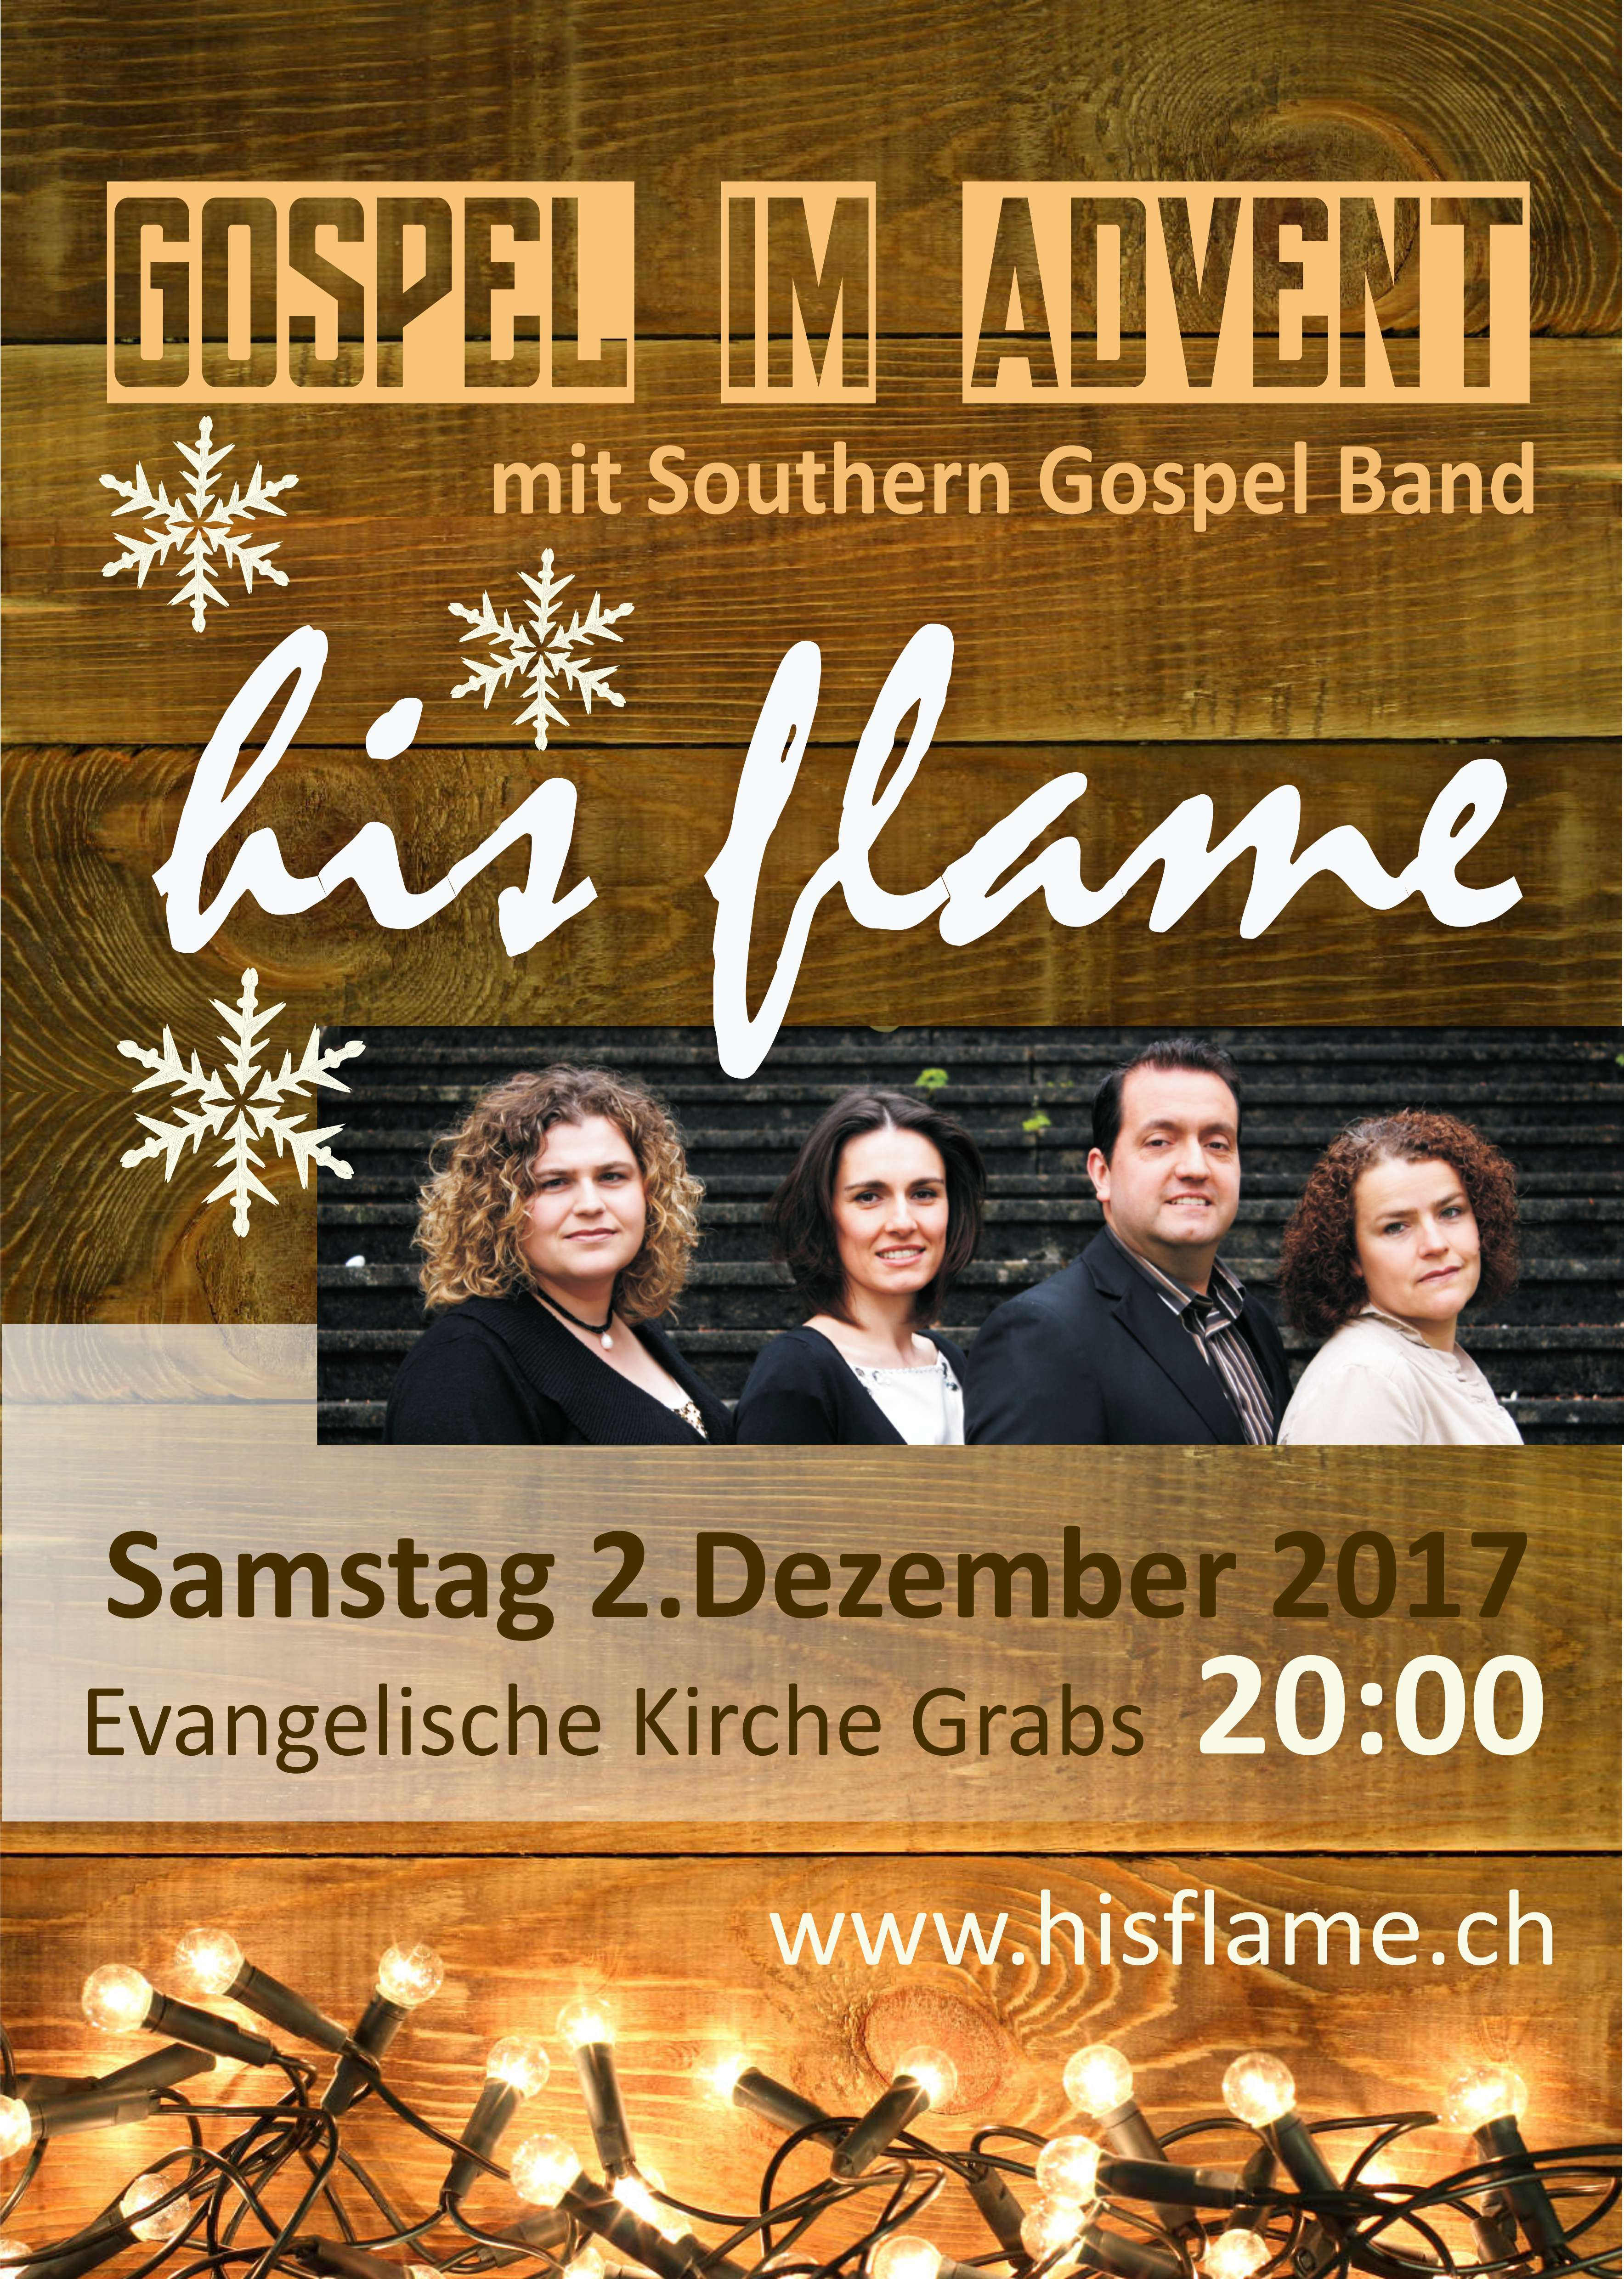 Adventskonzert der Southern Gospel Band his flame in Grabs